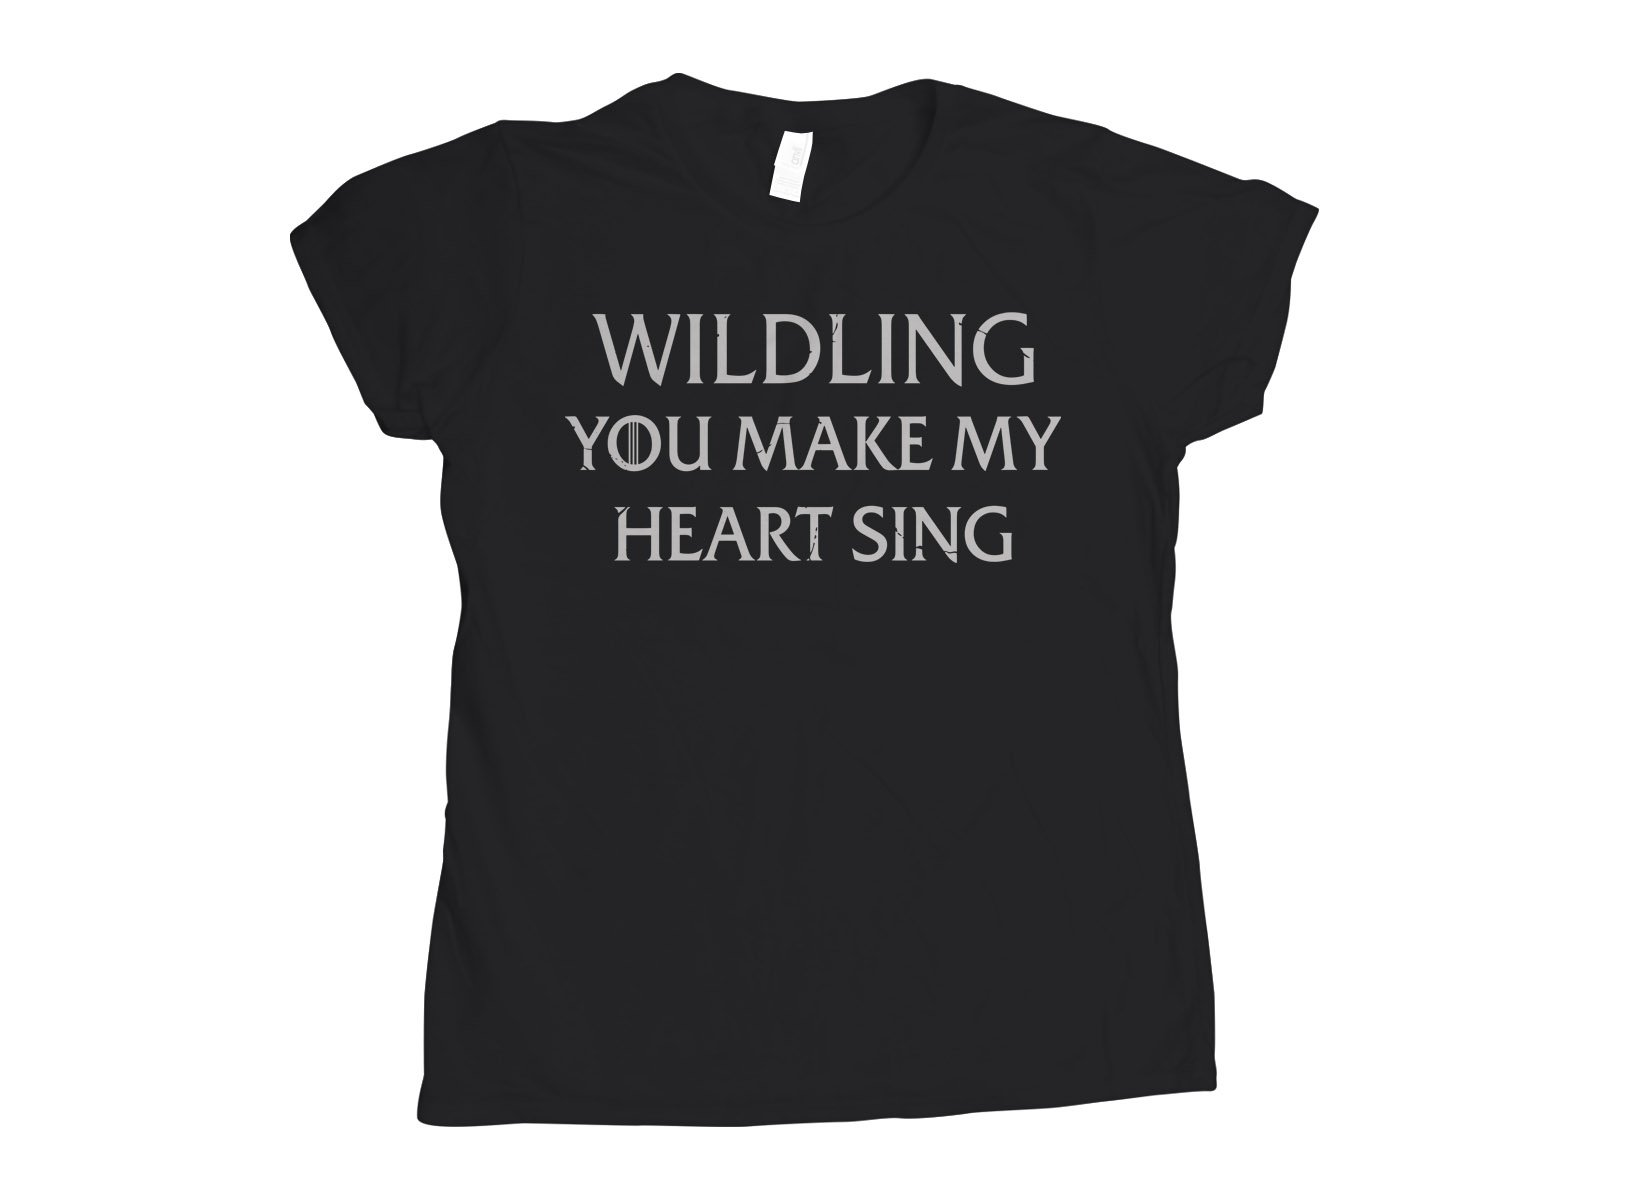 Wildling You Make My Heart Sing on Womens T-Shirt